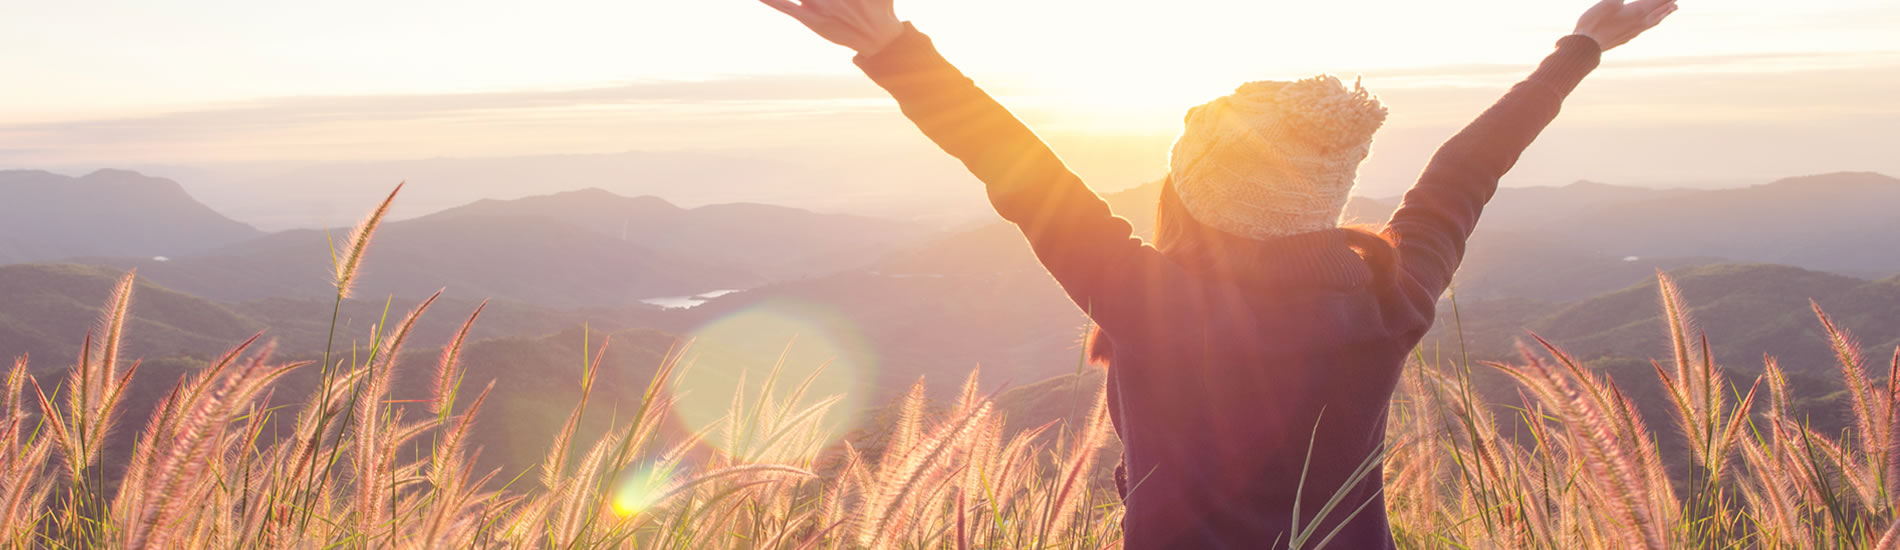 Woman with outstretched hands to Sun coming over mountain range